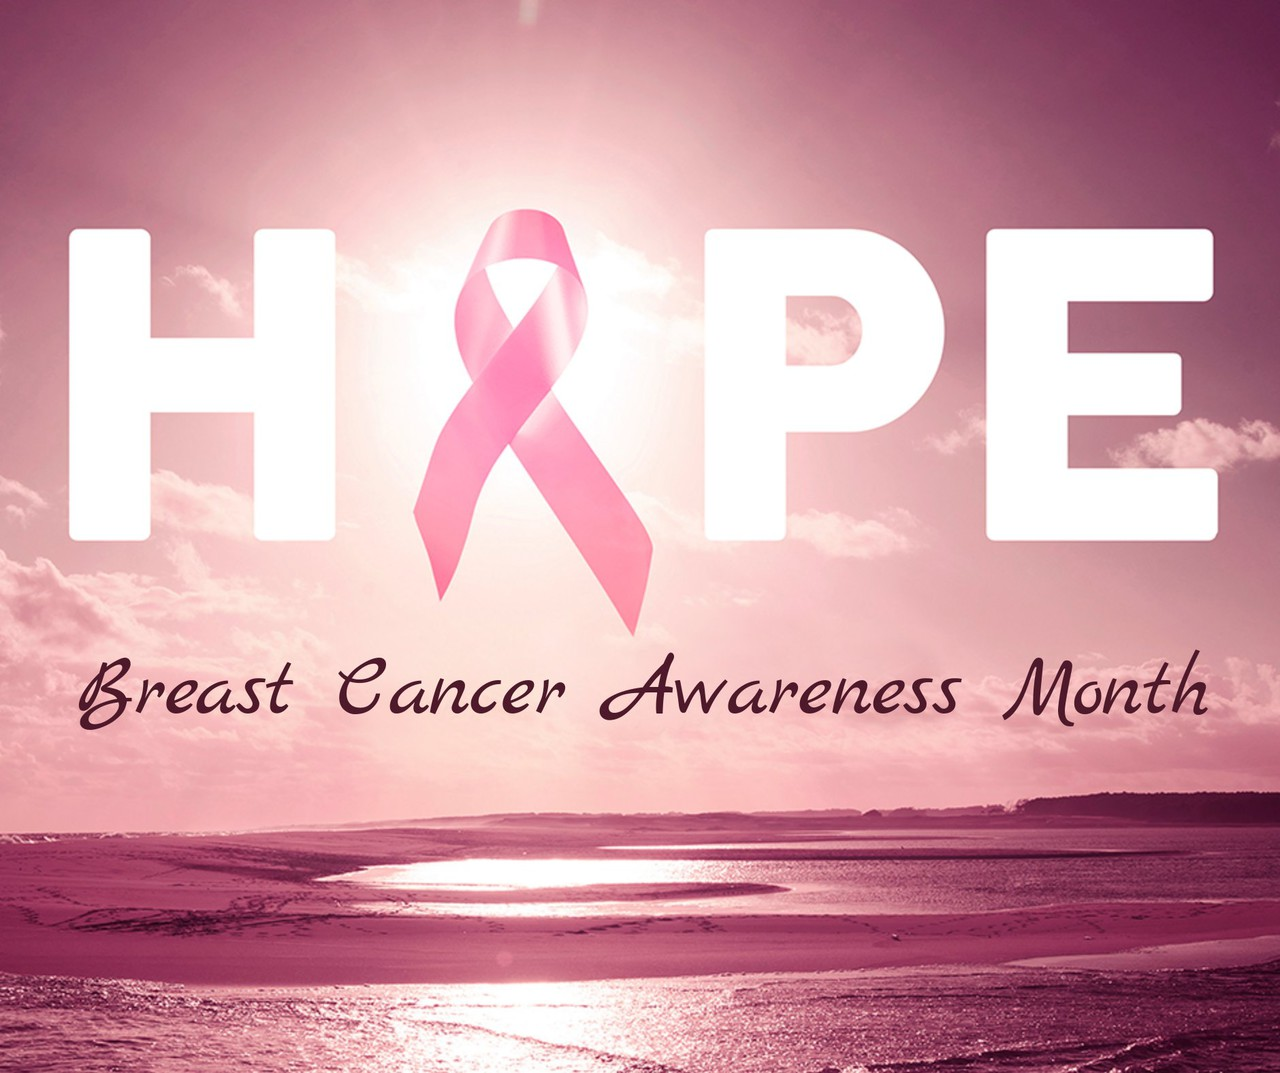 October – Breast Cancer Awareness Month